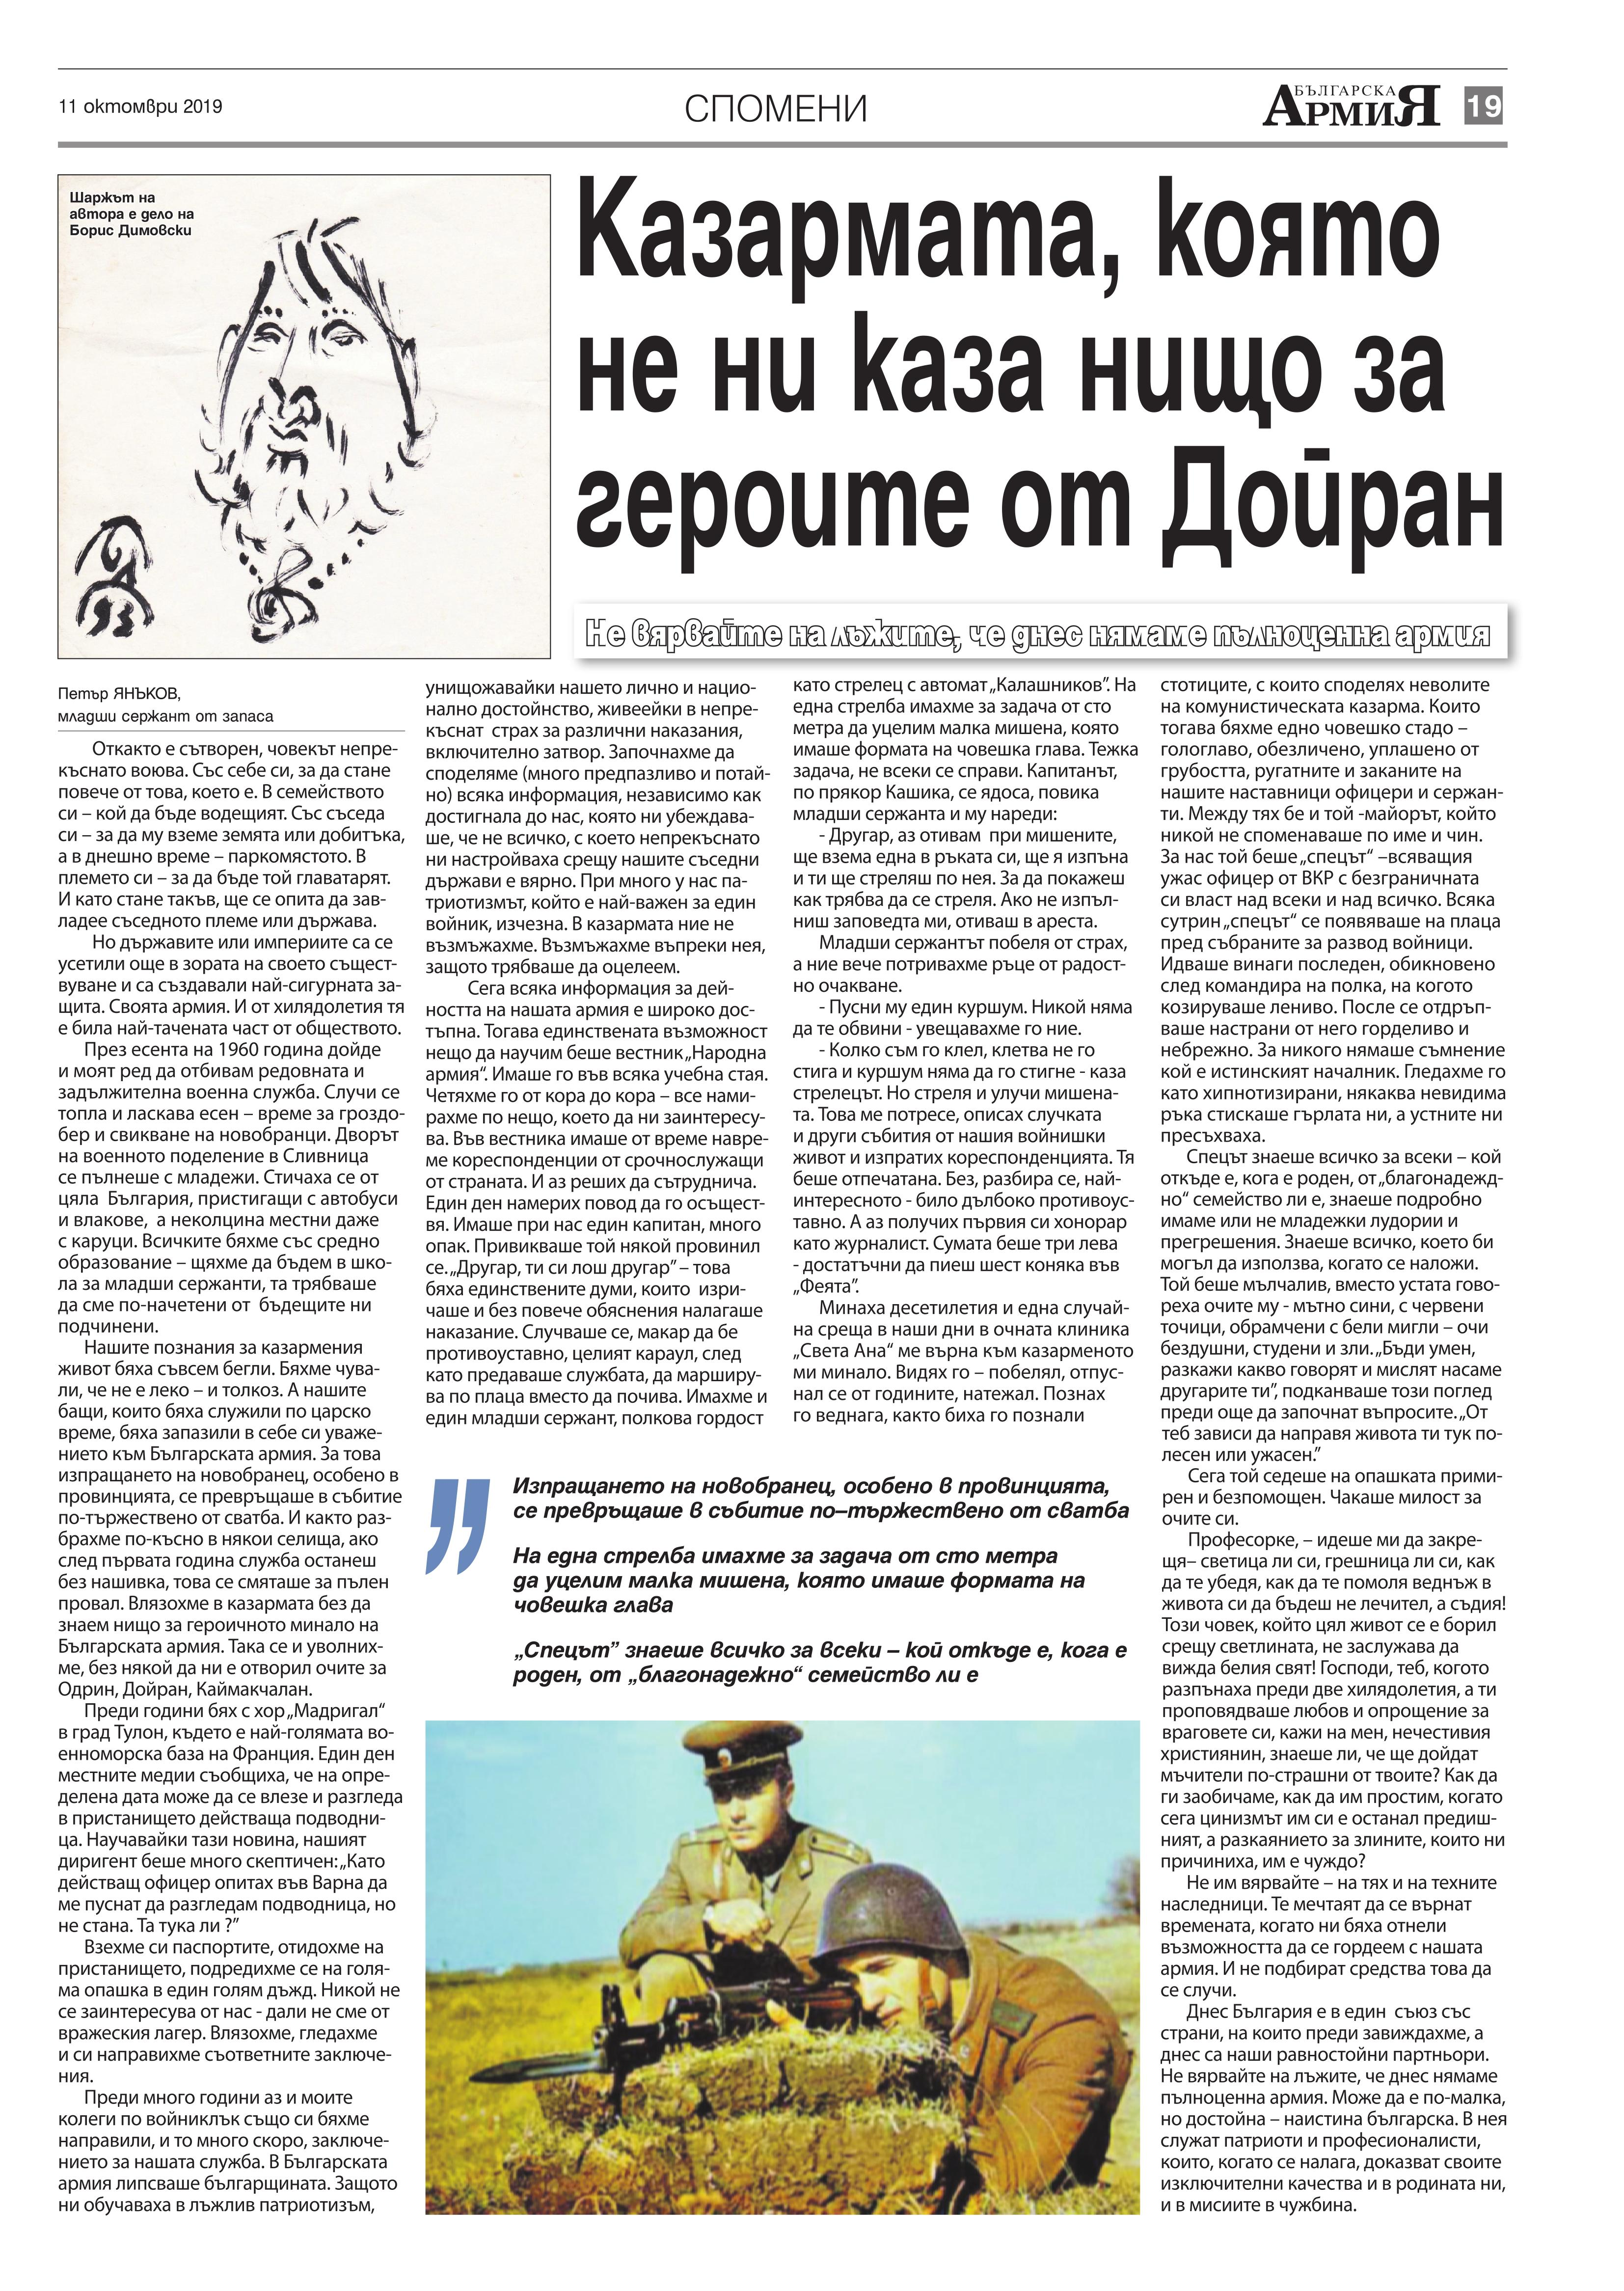 https://www.armymedia.bg/wp-content/uploads/2015/06/19.page1_-112.jpg